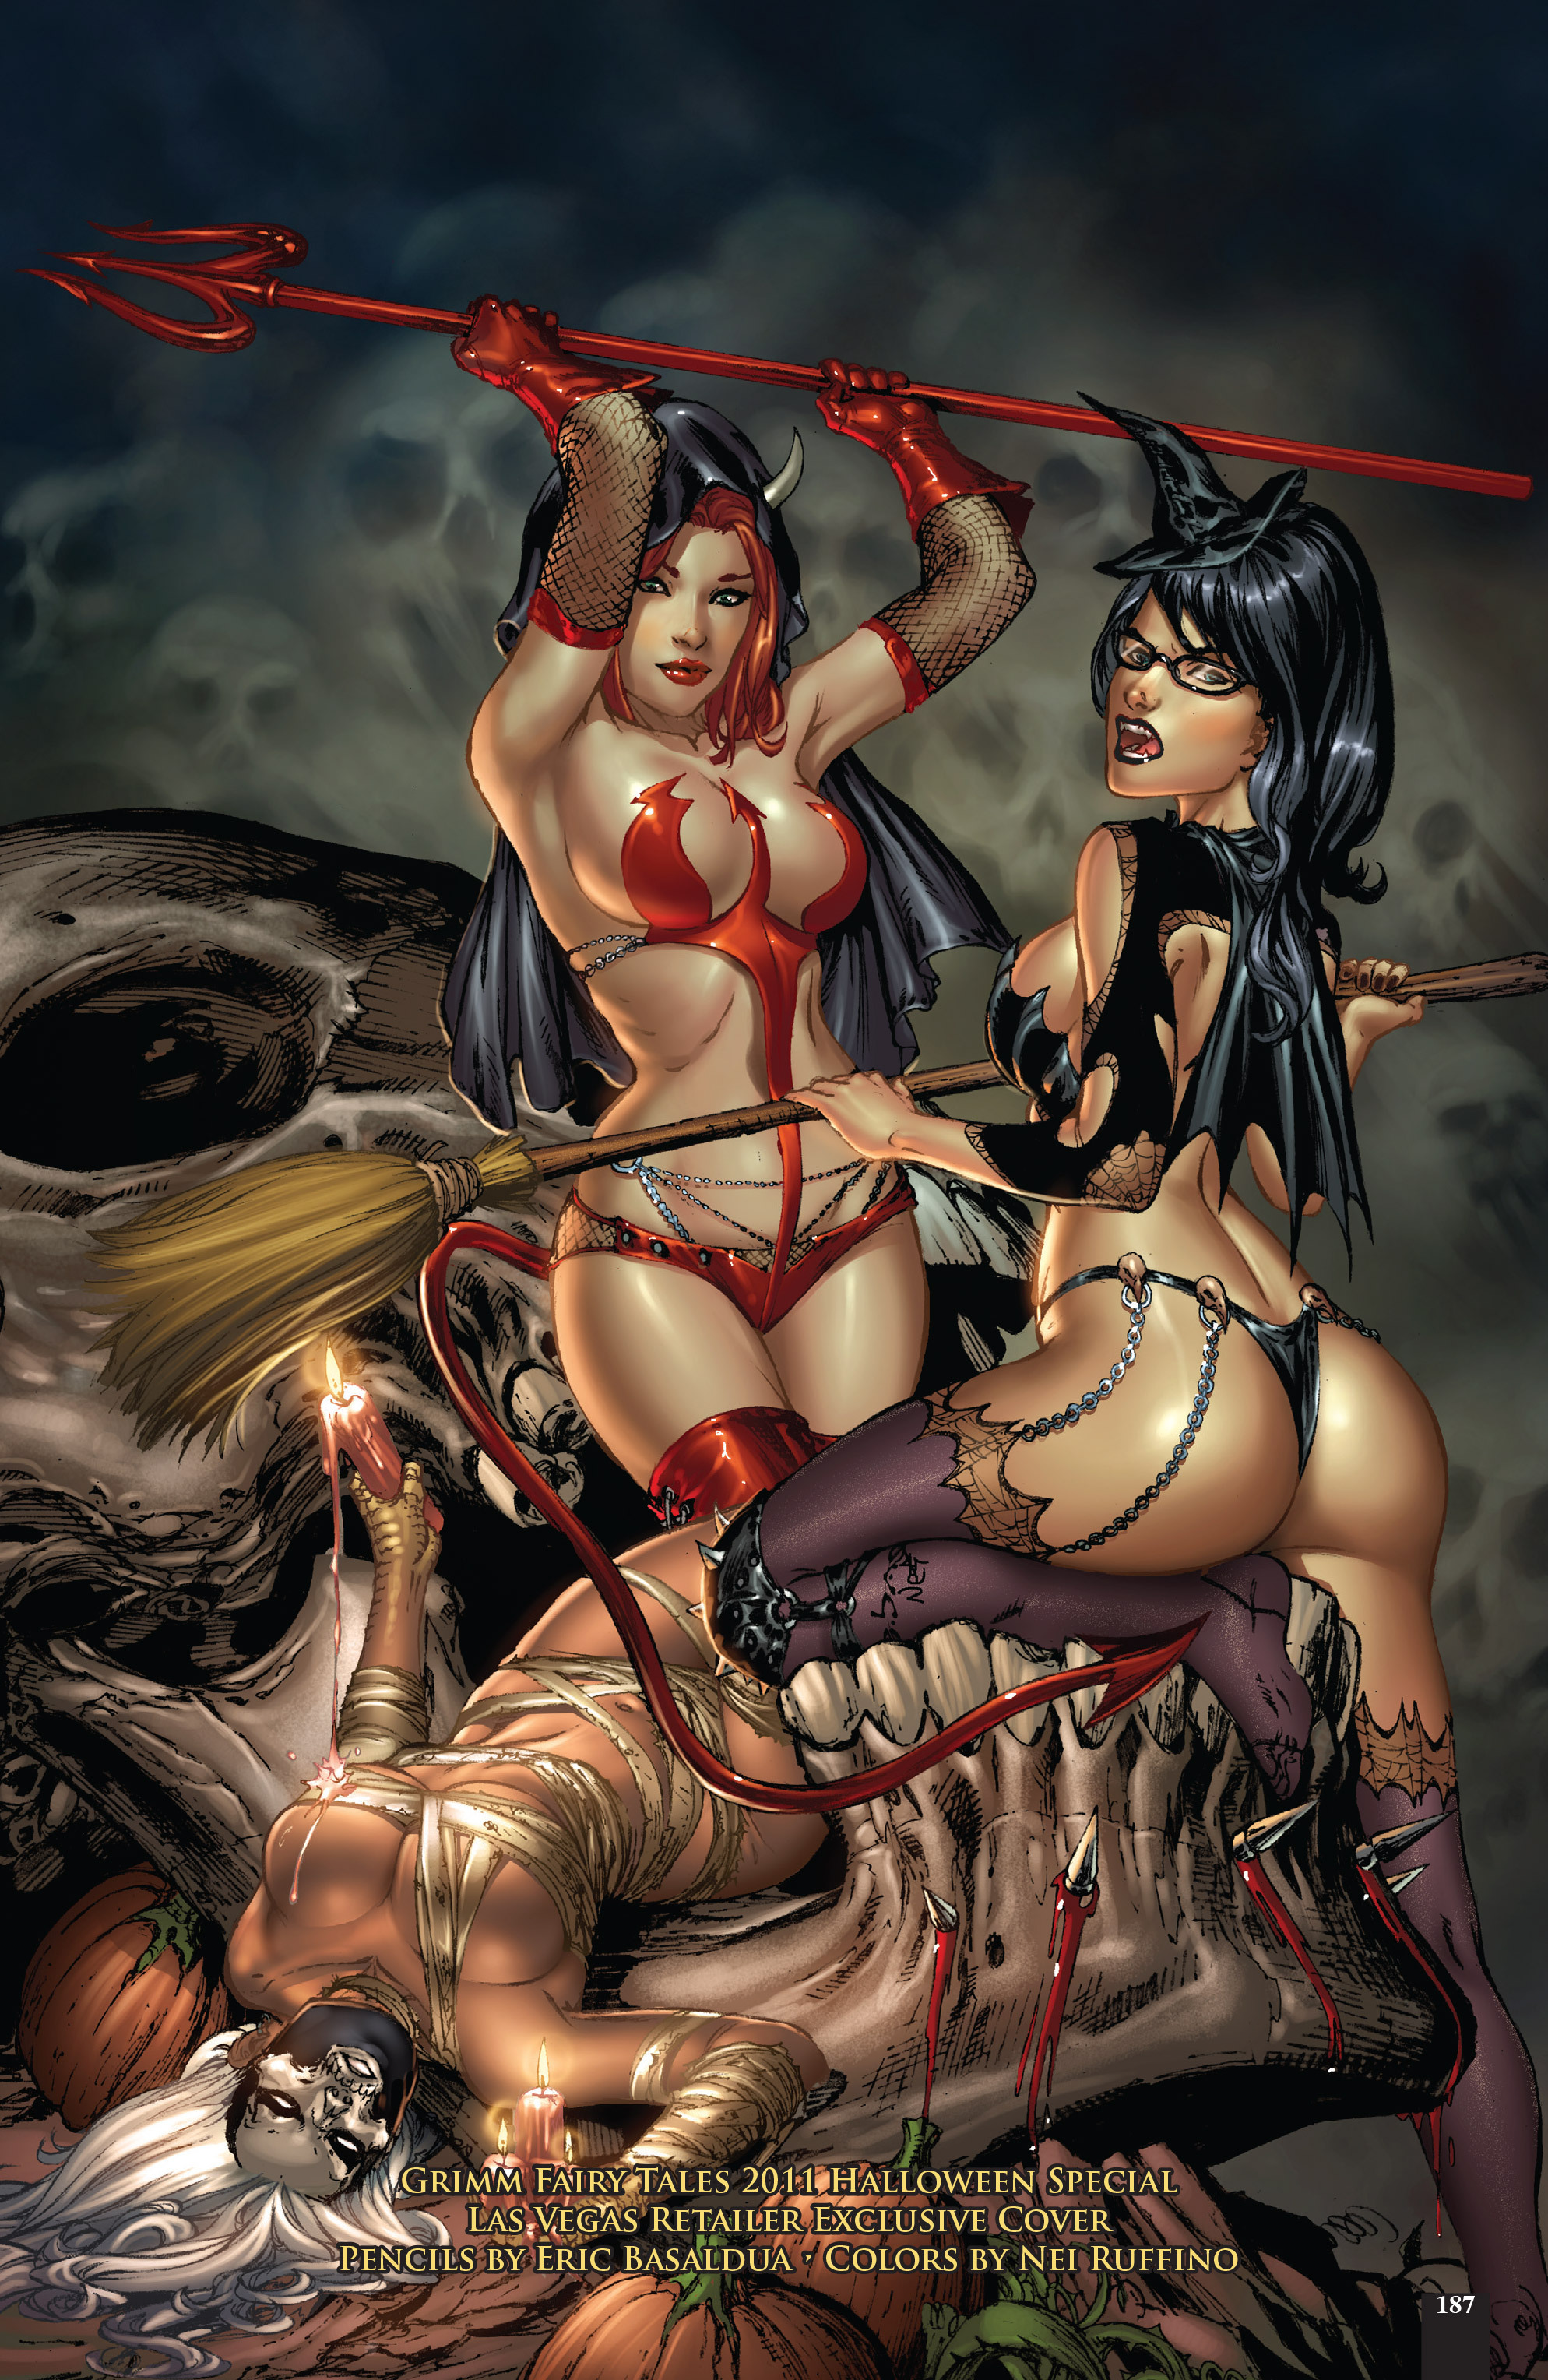 Read online Grimm Fairy Tales: Different Seasons comic -  Issue # TPB 2 - 184